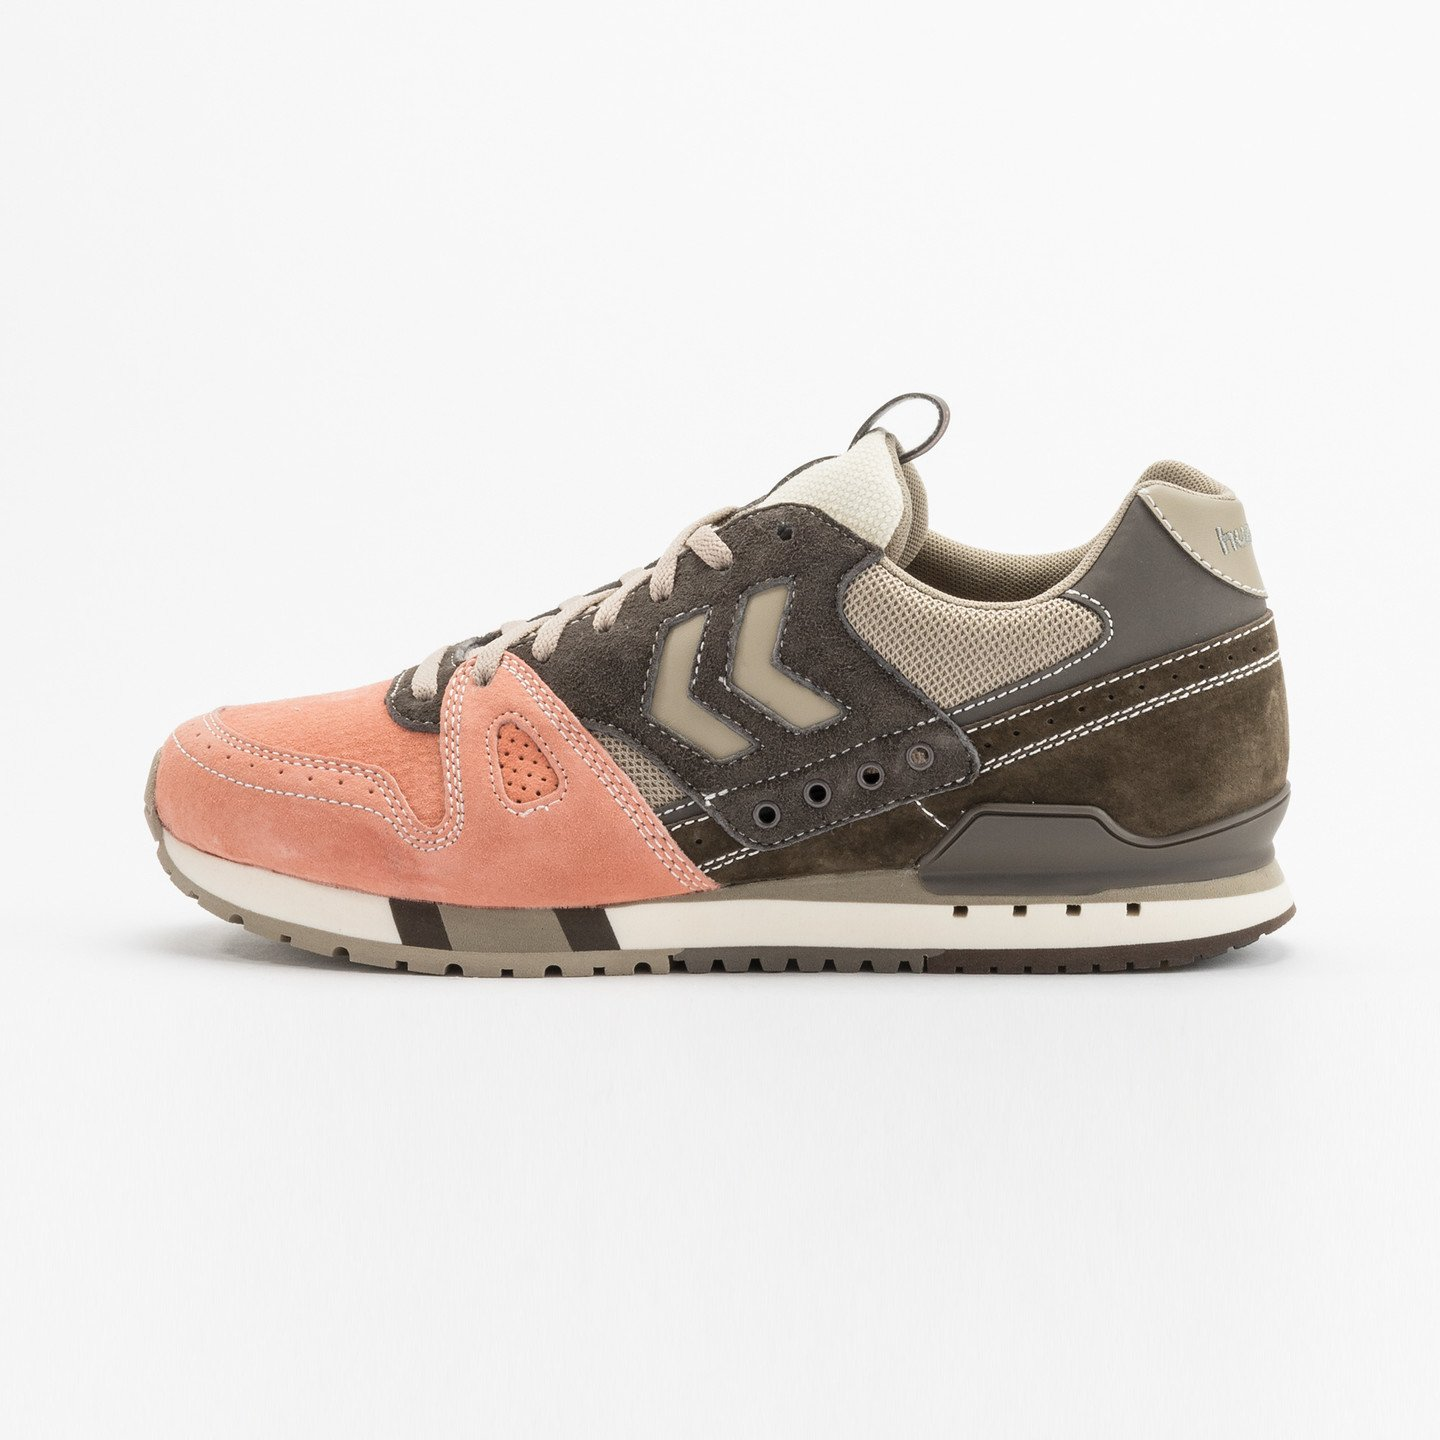 Hummel Marathona OG Mita 'Danish Salmon' Chinchilla / Salmon 63603-1515-43